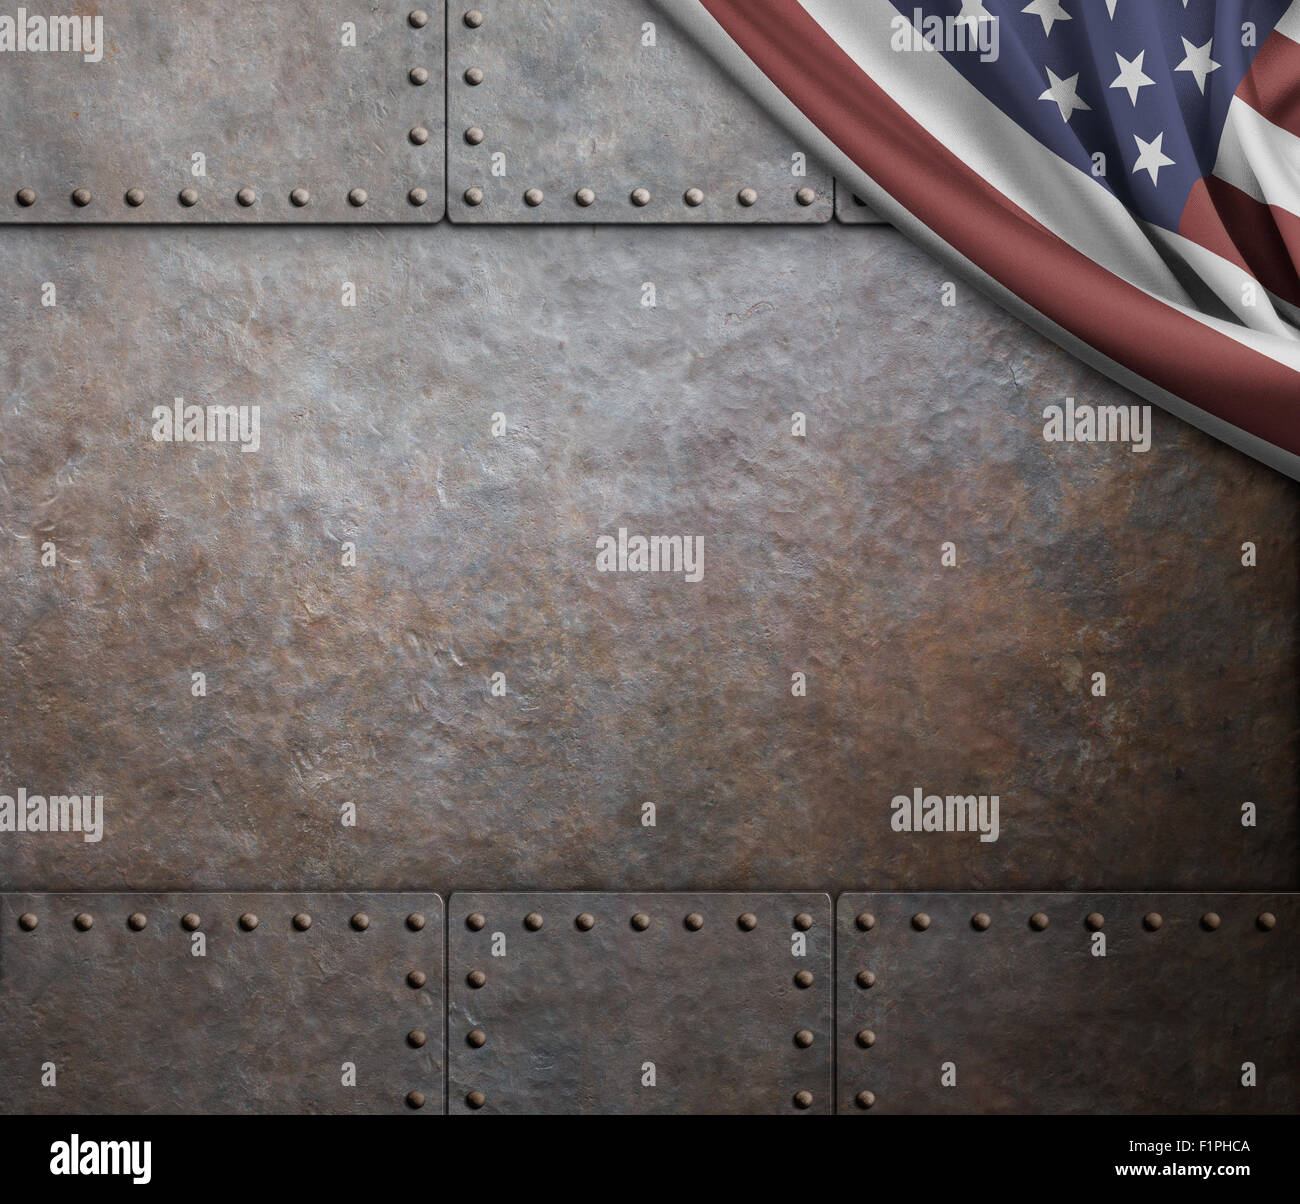 Sheet Metal Flag >> rust steel metal texture with rivets as steam punk background Stock Photo, Royalty Free Image ...